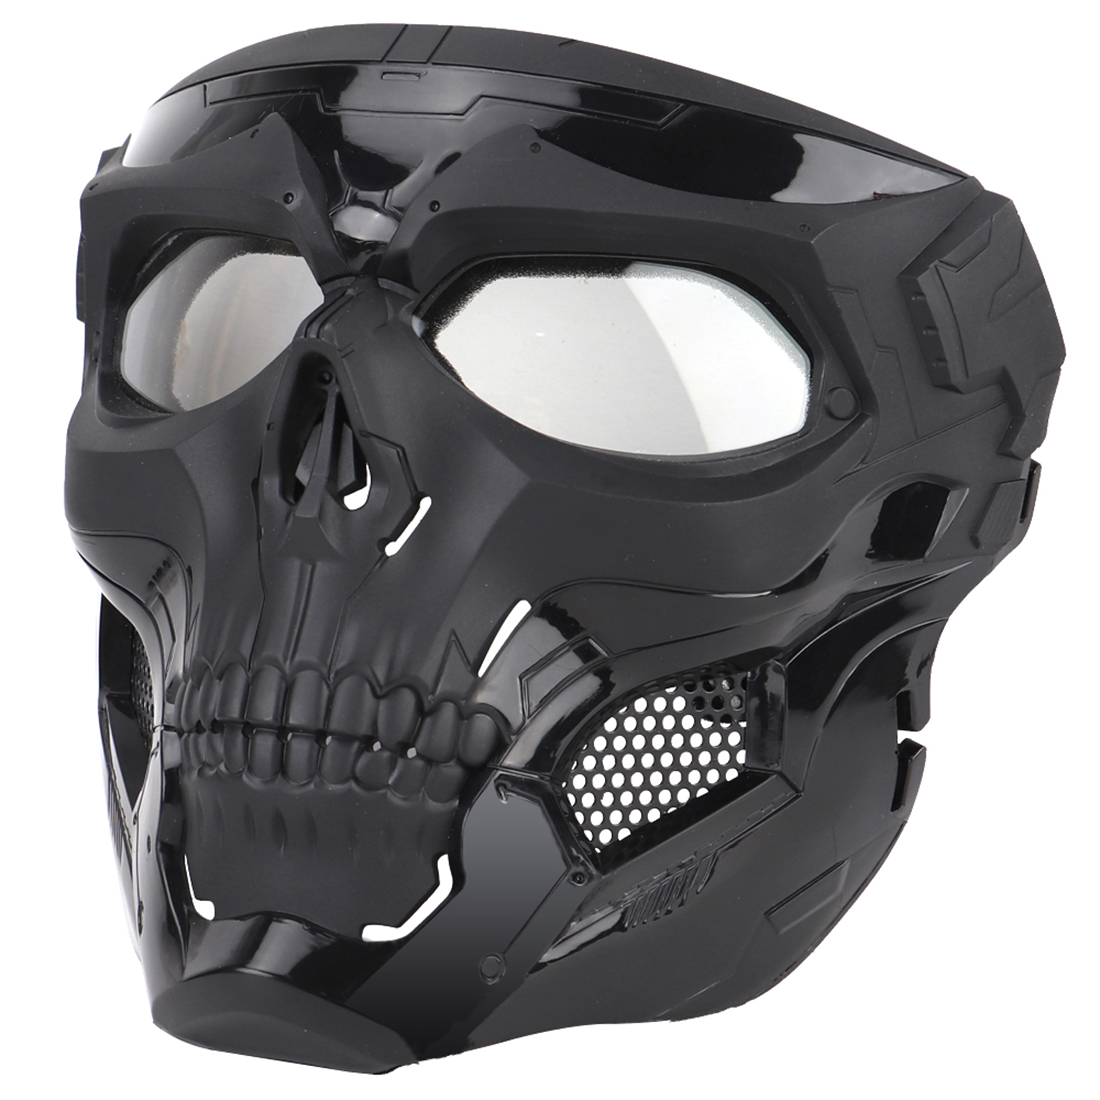 2019 WST Skull Tactical Hunting Mask Halloween Party Games Face Mask For FAST Outdoor Combat Shooting Face Protective Mask